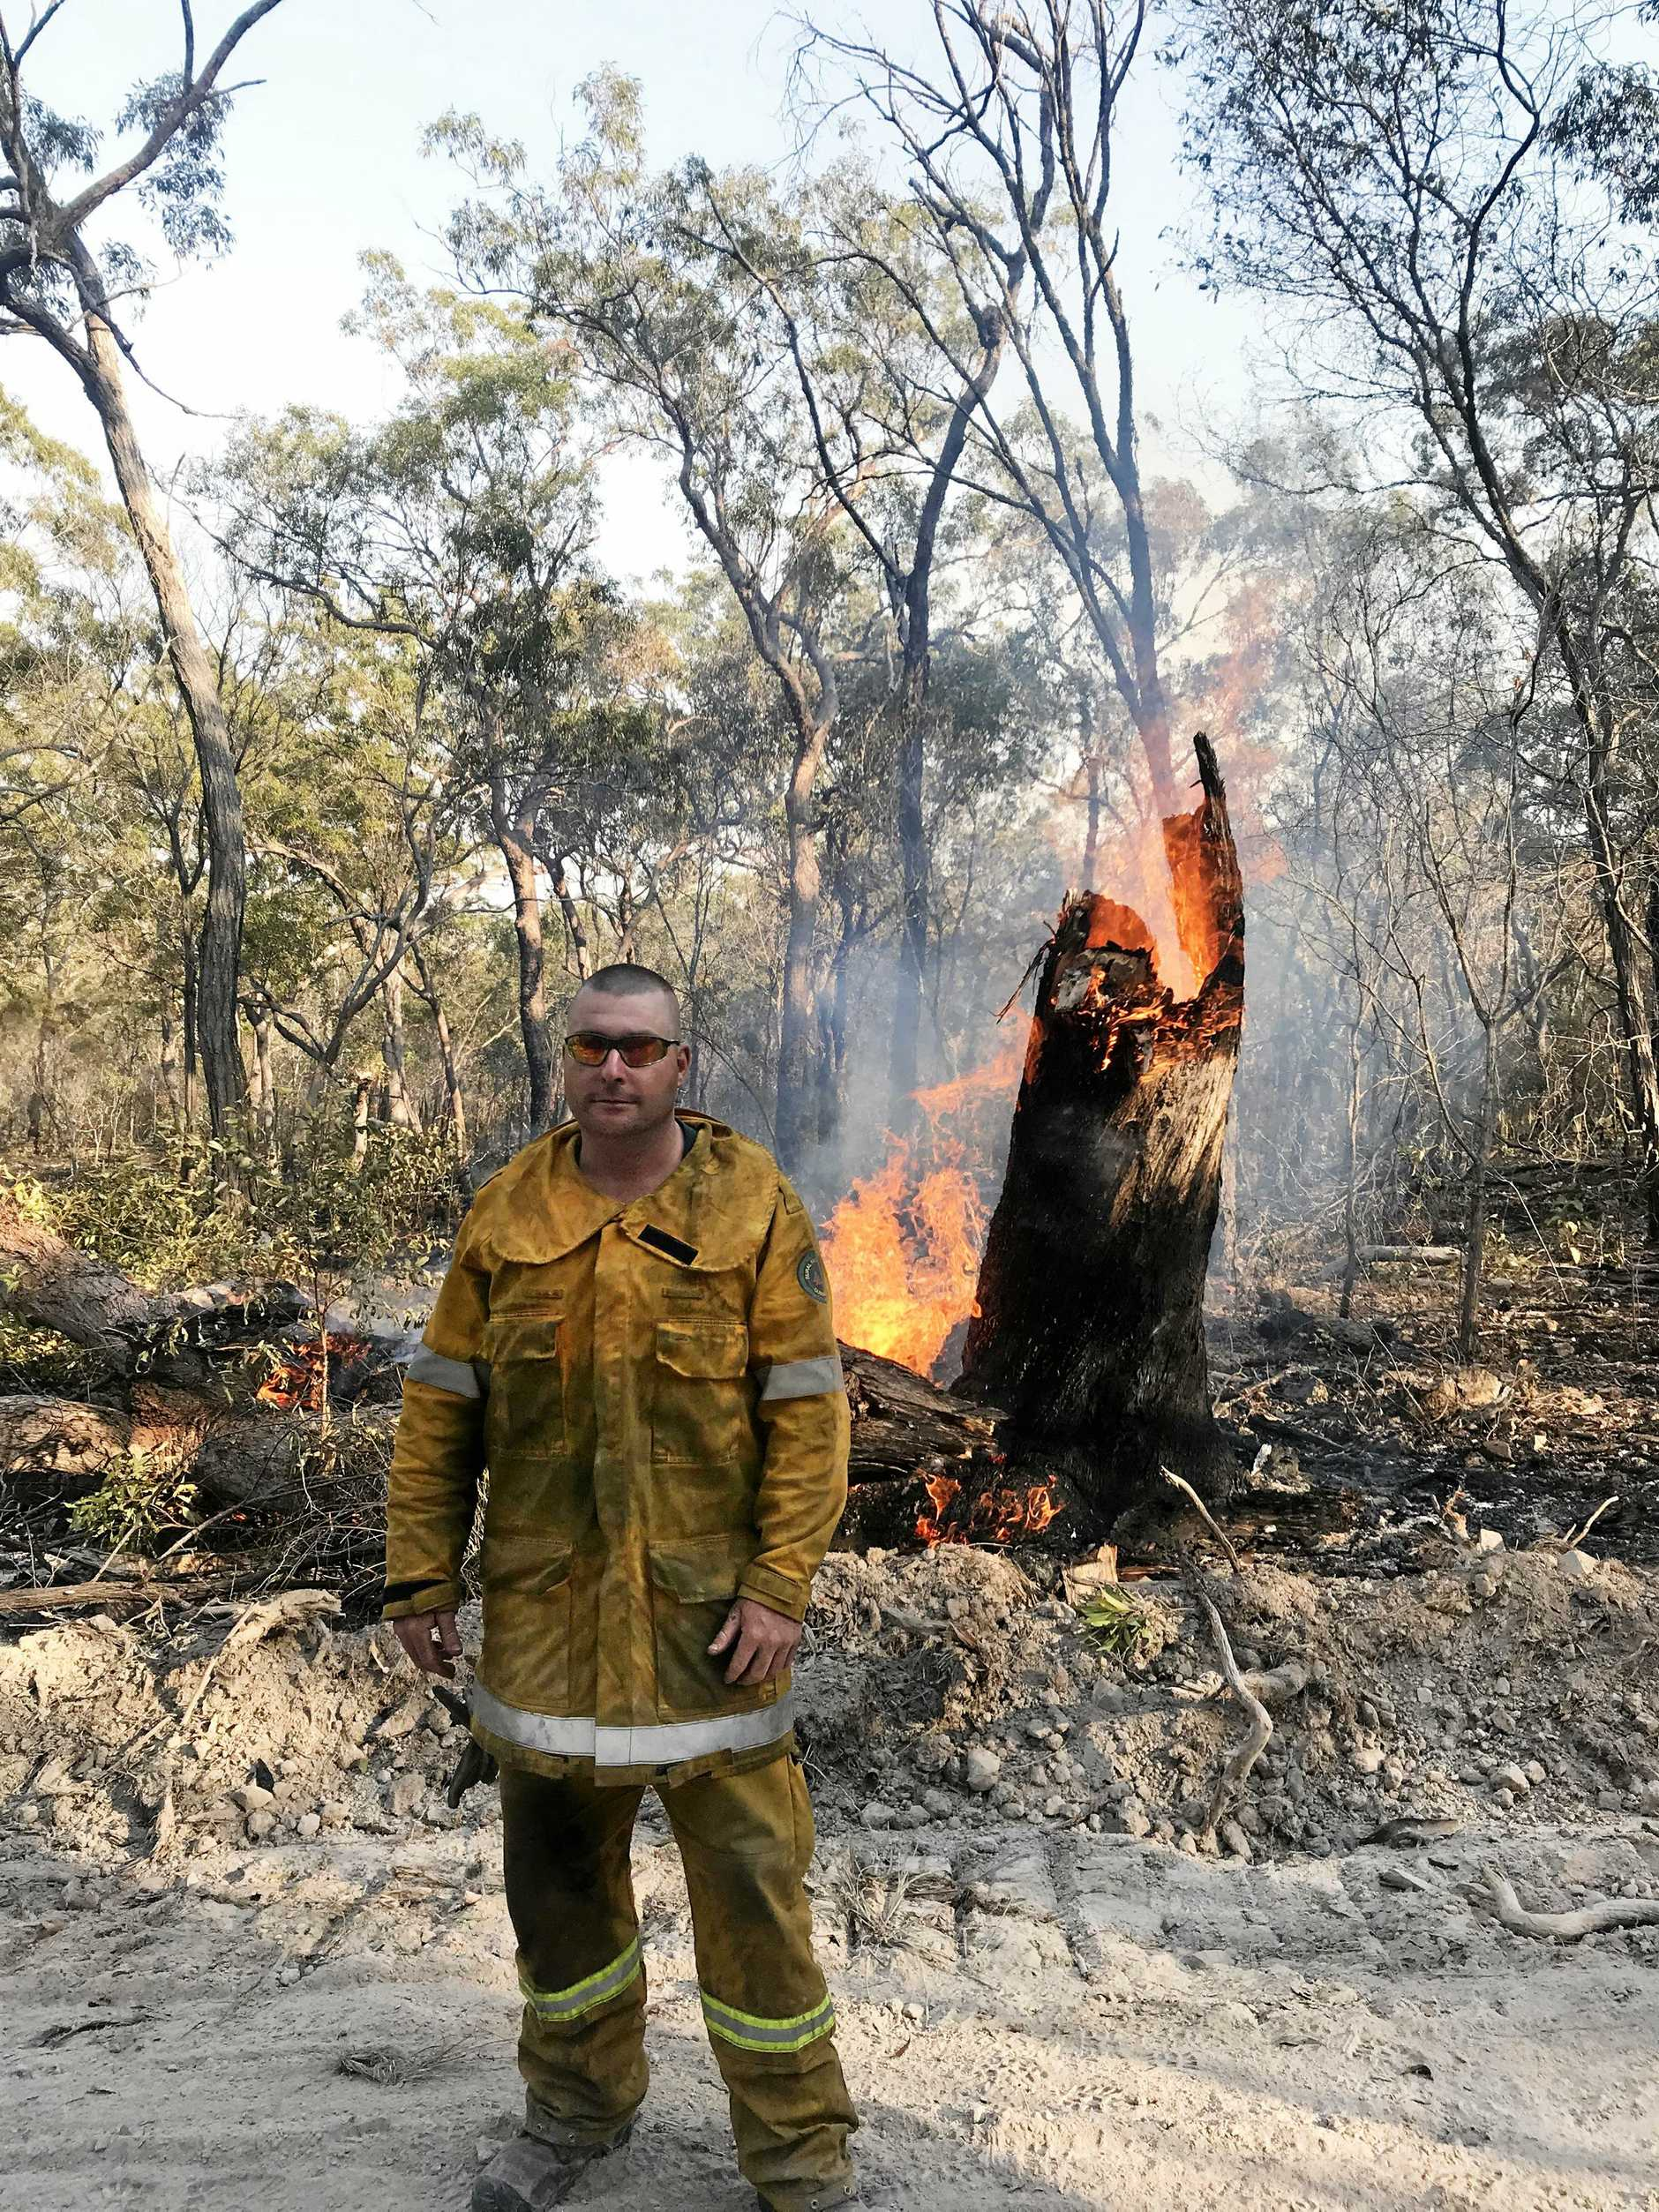 Adrian Reynolds was posted in the Australian Defence Force depot in Rockhampton - the only full-time ADF member in the 11th Engineer Regiment (11ER) at the time - when he raised his hand to help fight fires in Central Queensland.